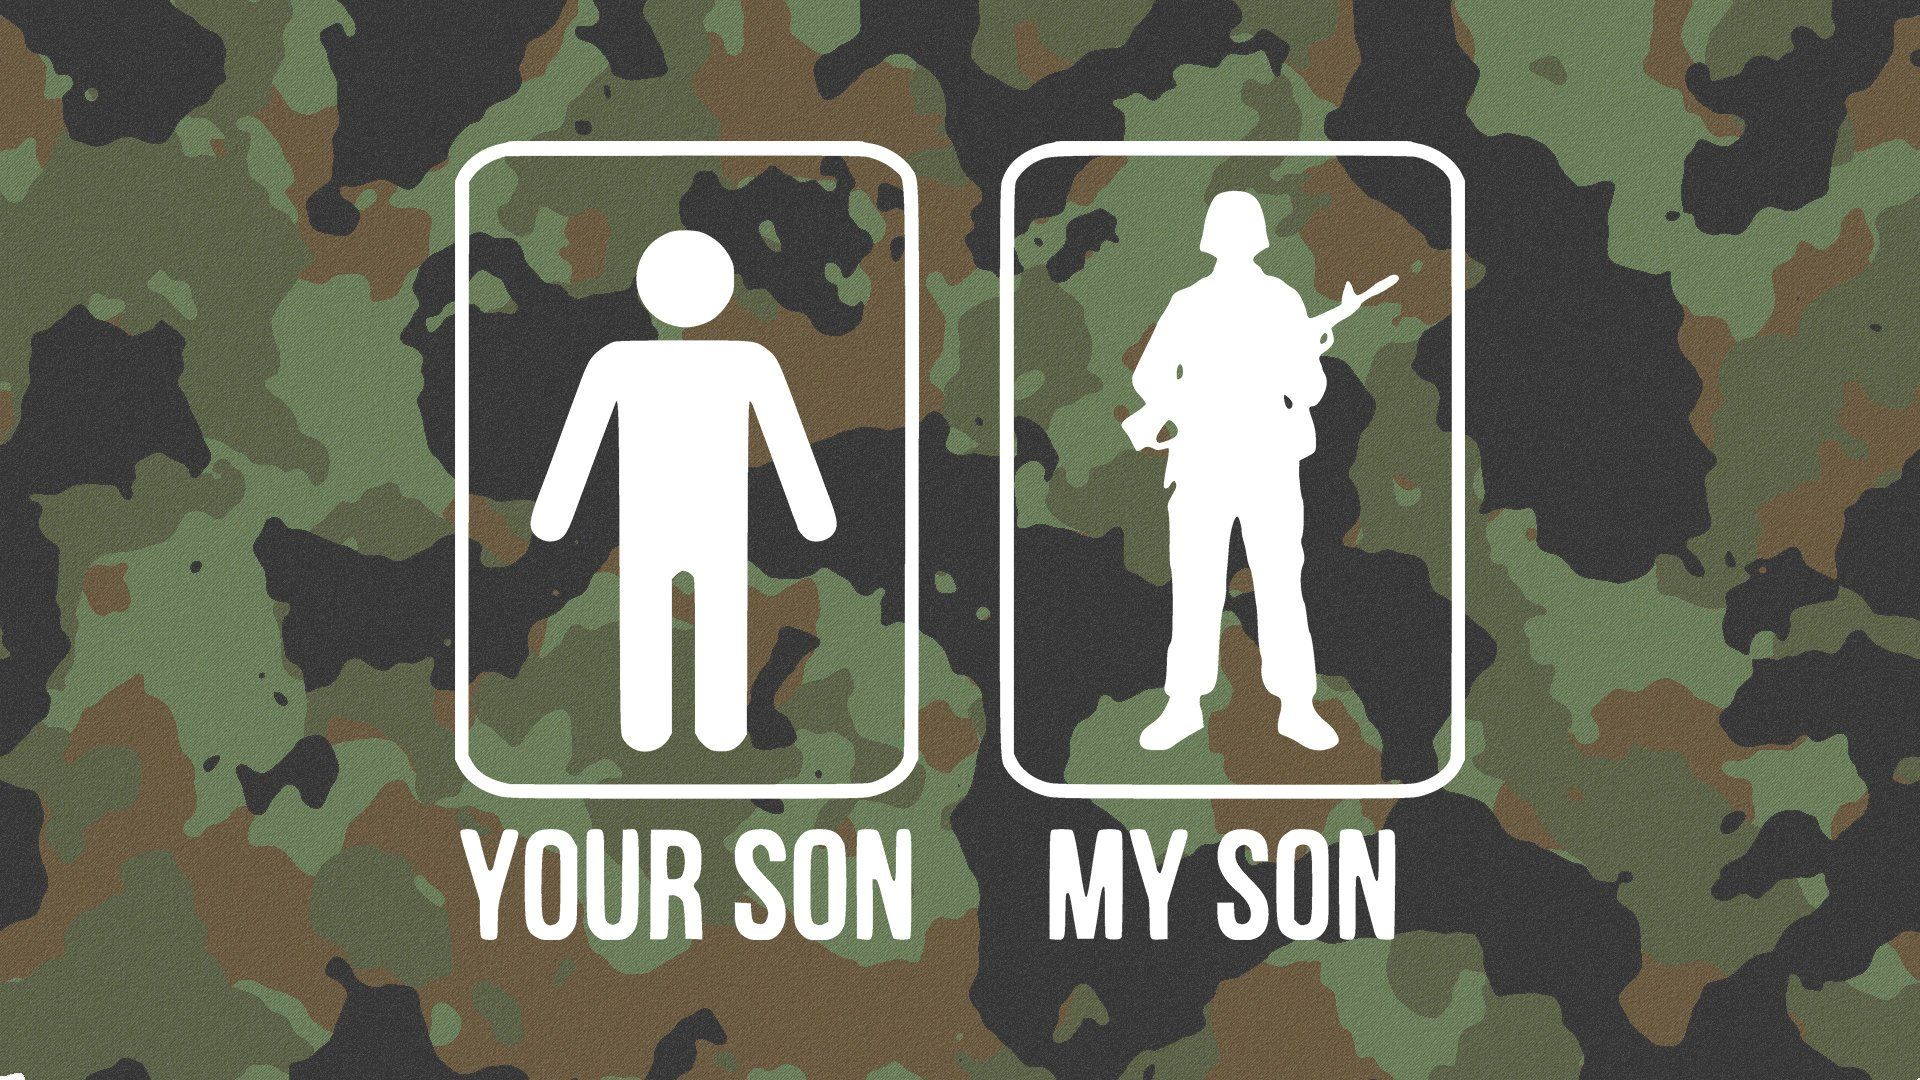 Your Son My Son Military Decal Army Branch Army Decal Etsy Army Branches Vinyl Decals Decals [ 1080 x 1920 Pixel ]